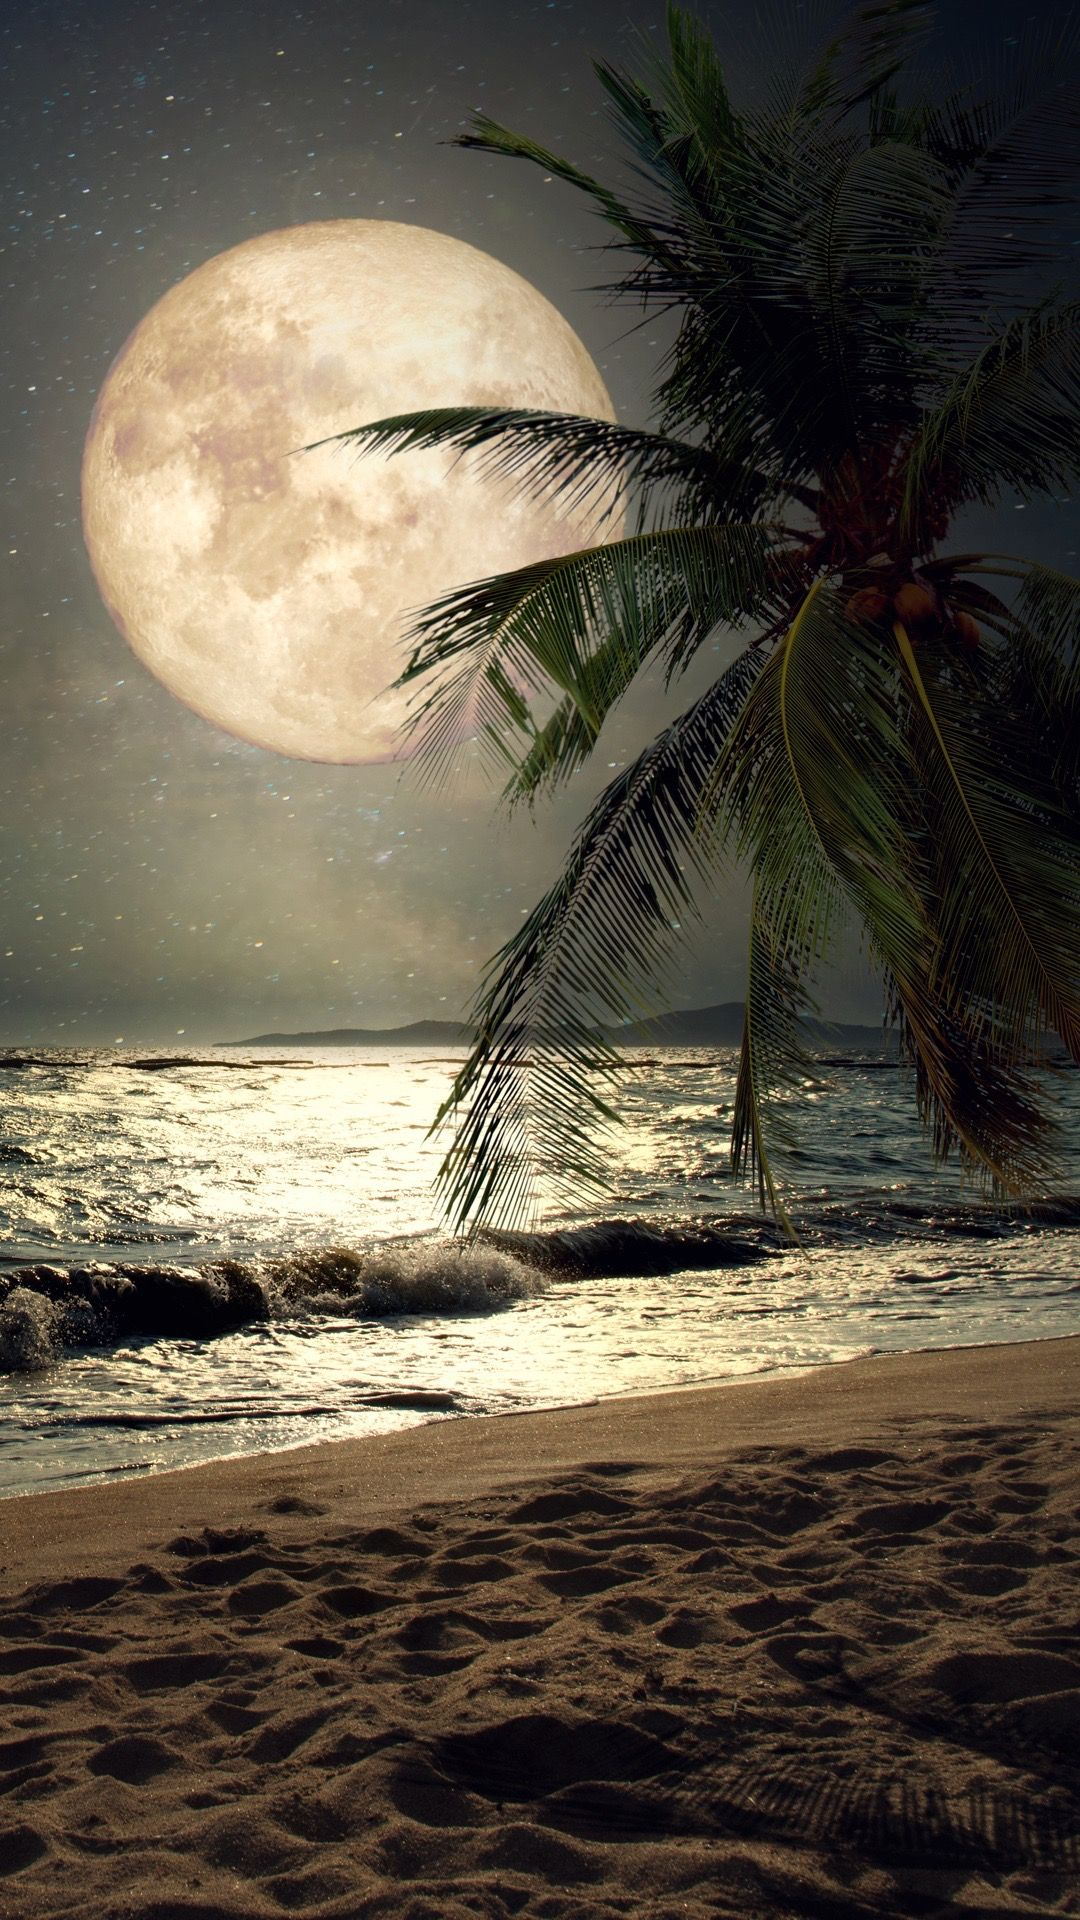 Pin By Tammy Rose On Pictures Moon Photography Beautiful Moon Hd Nature Wallpapers Evening beach scenery wallpaper